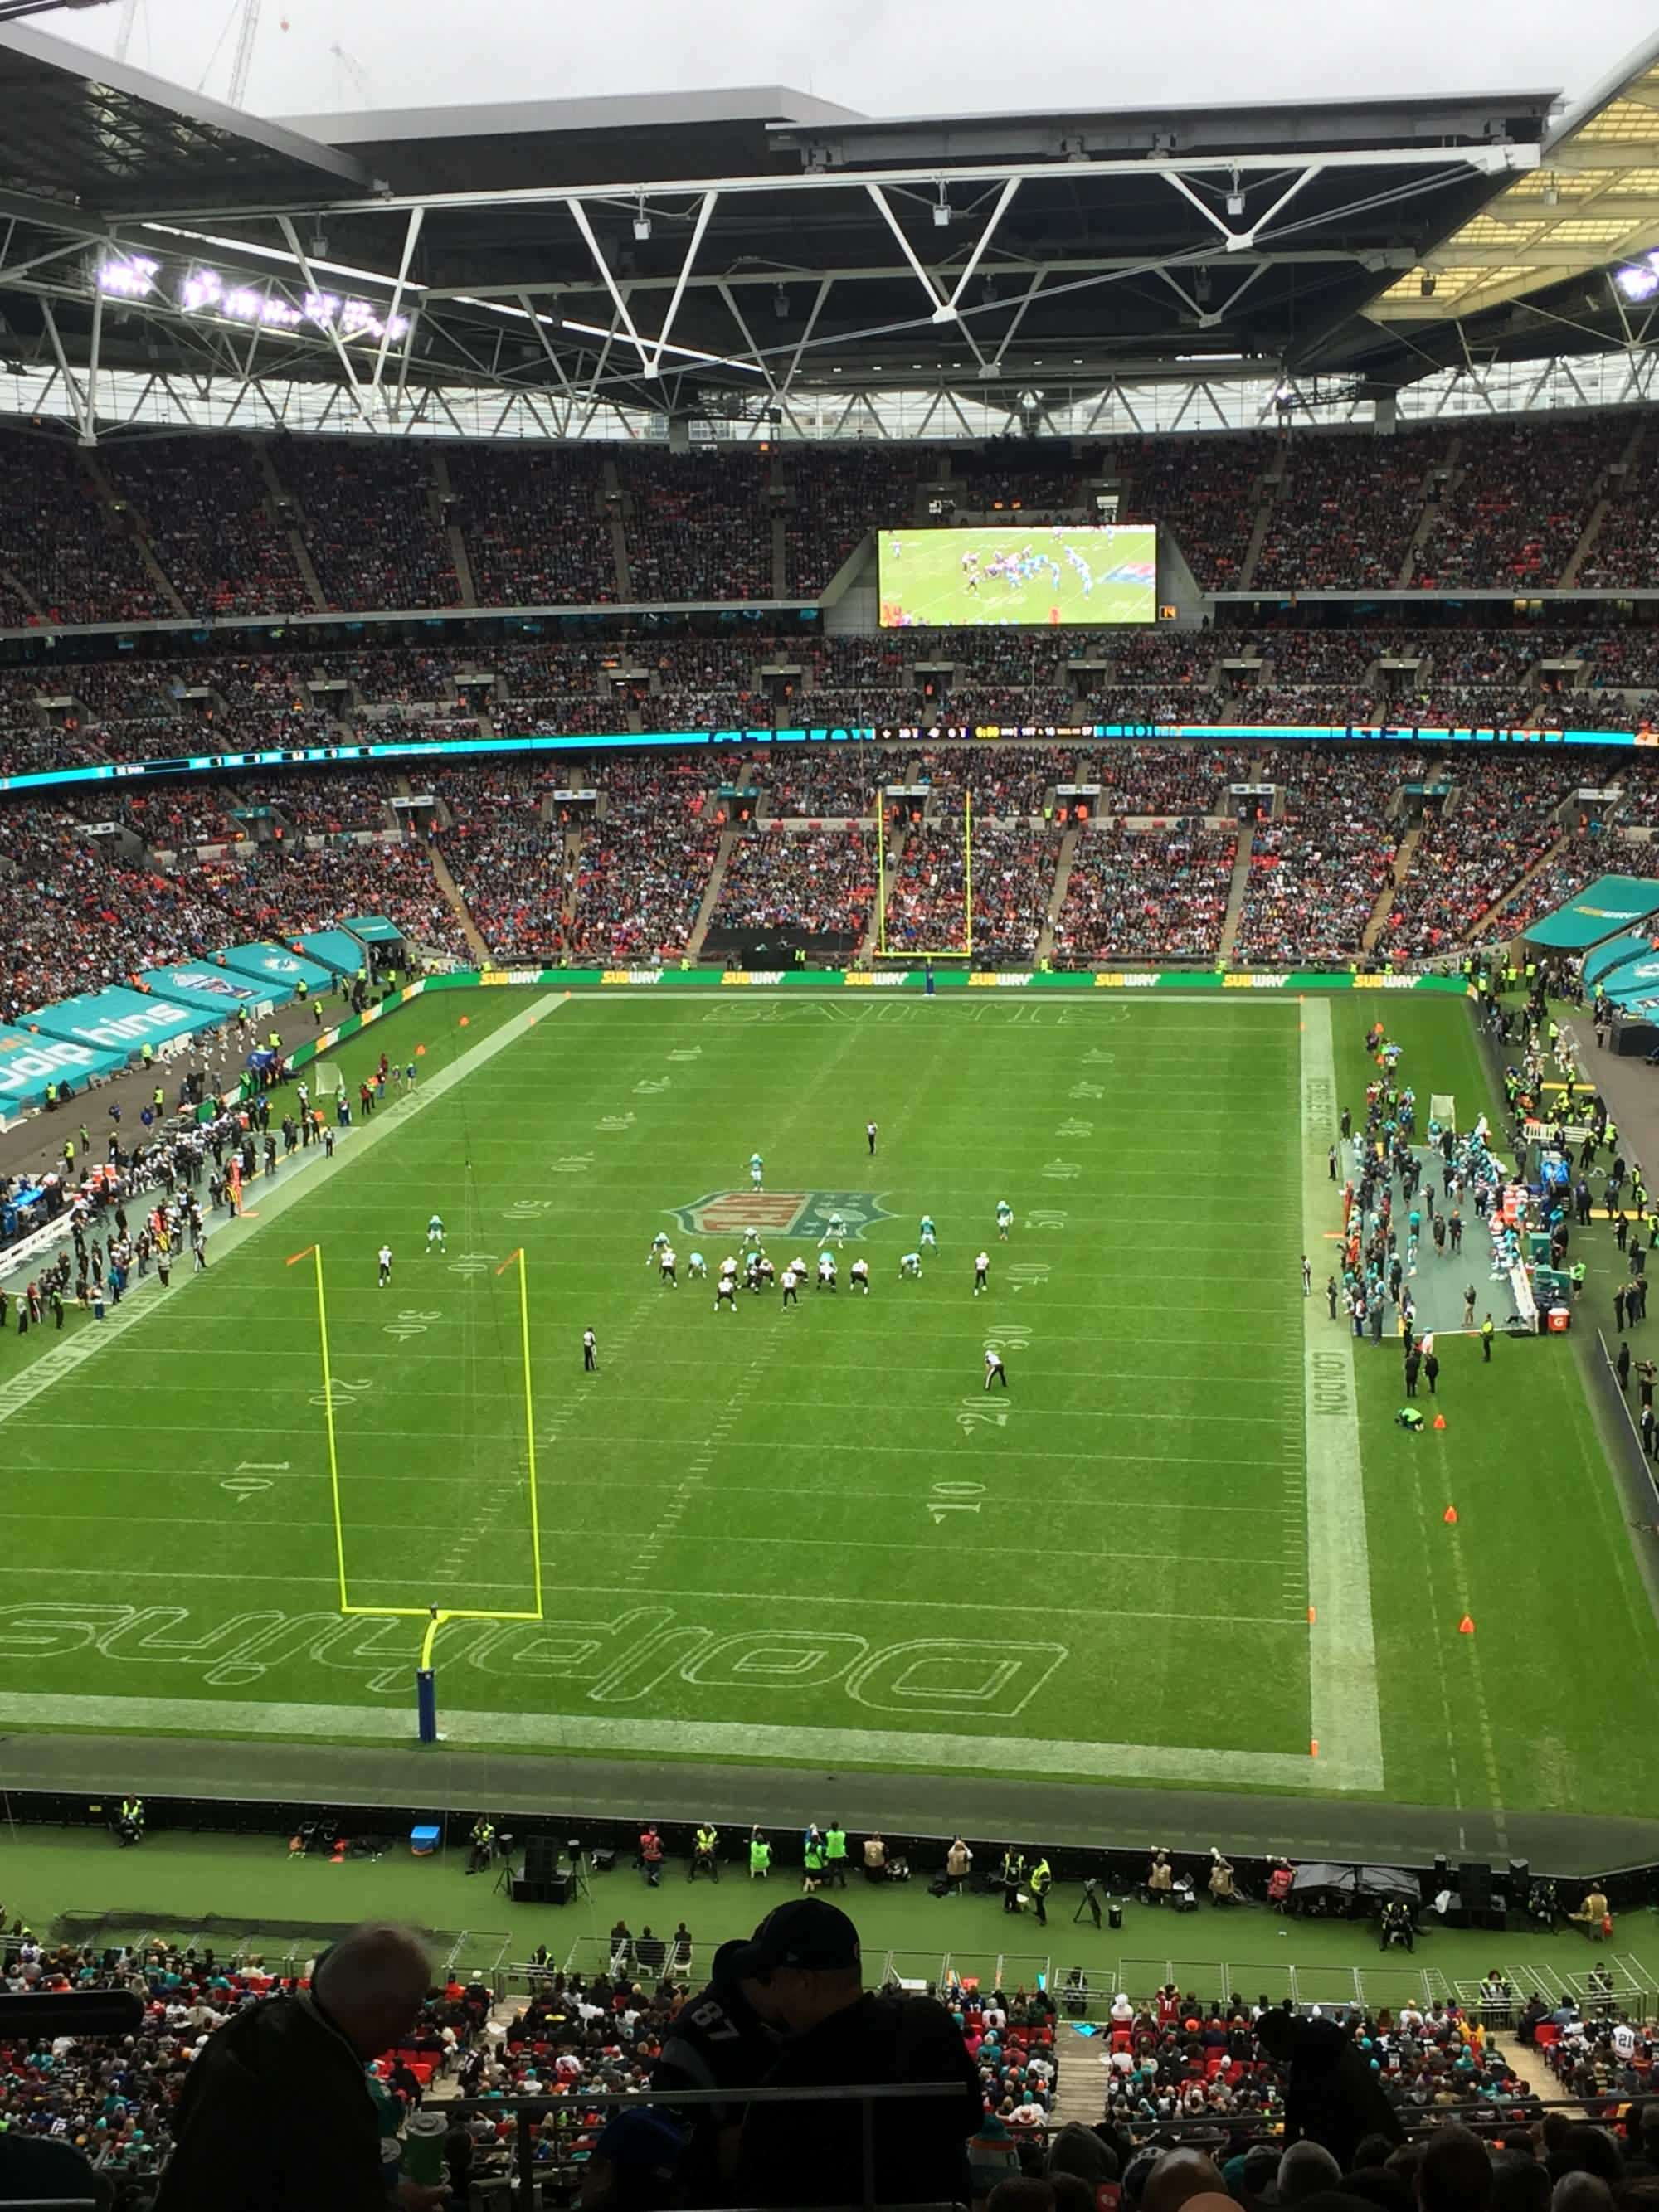 View from Seat Block 512 at Wembley Stadium